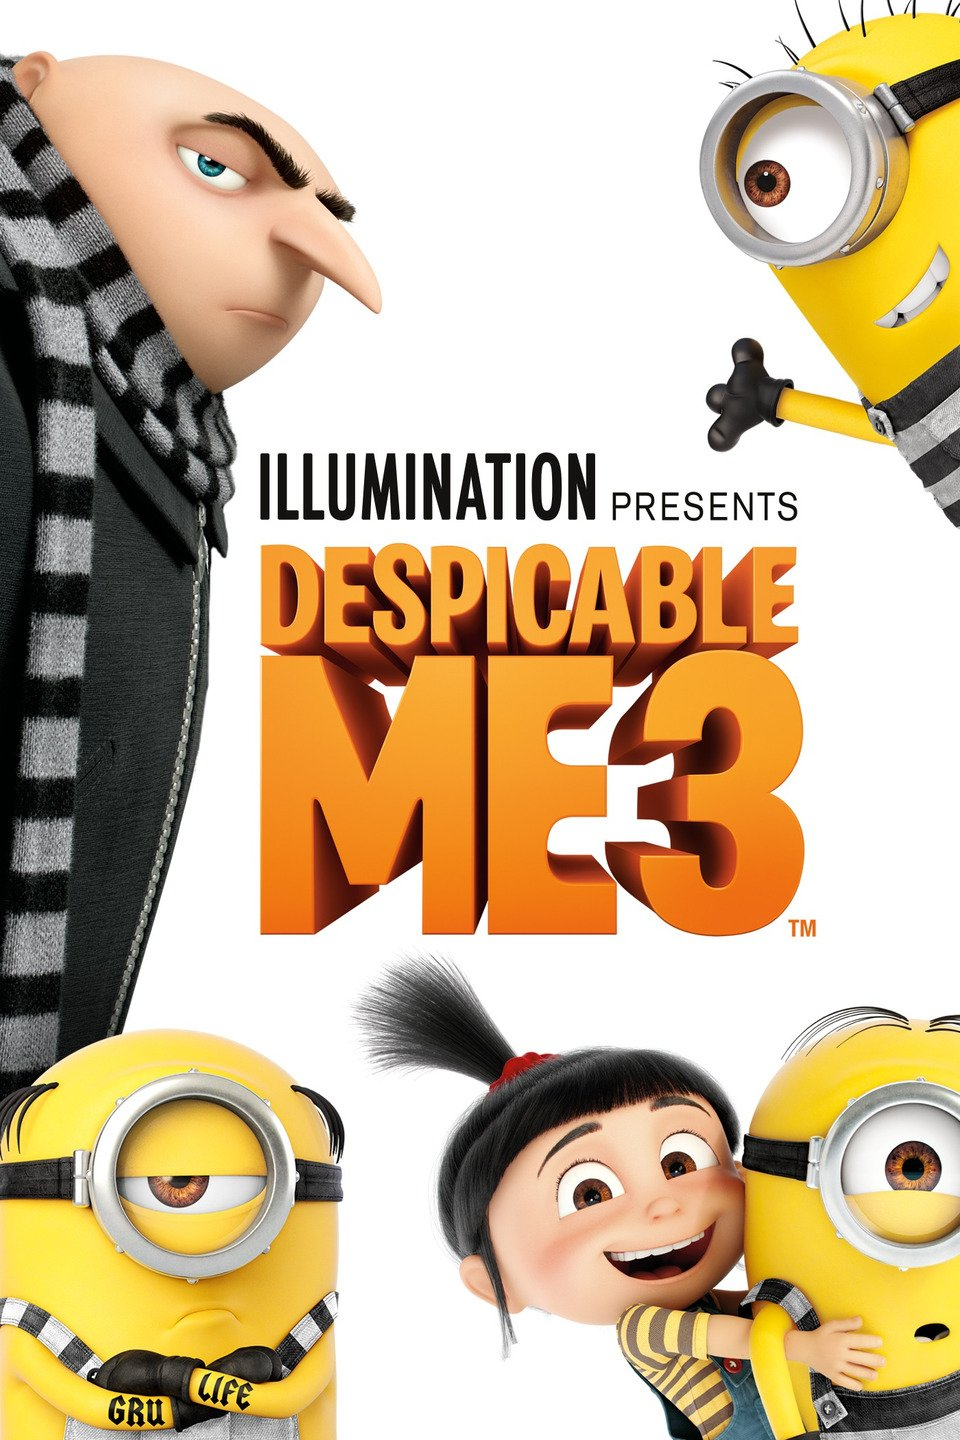 Despicable Me 3 poster art